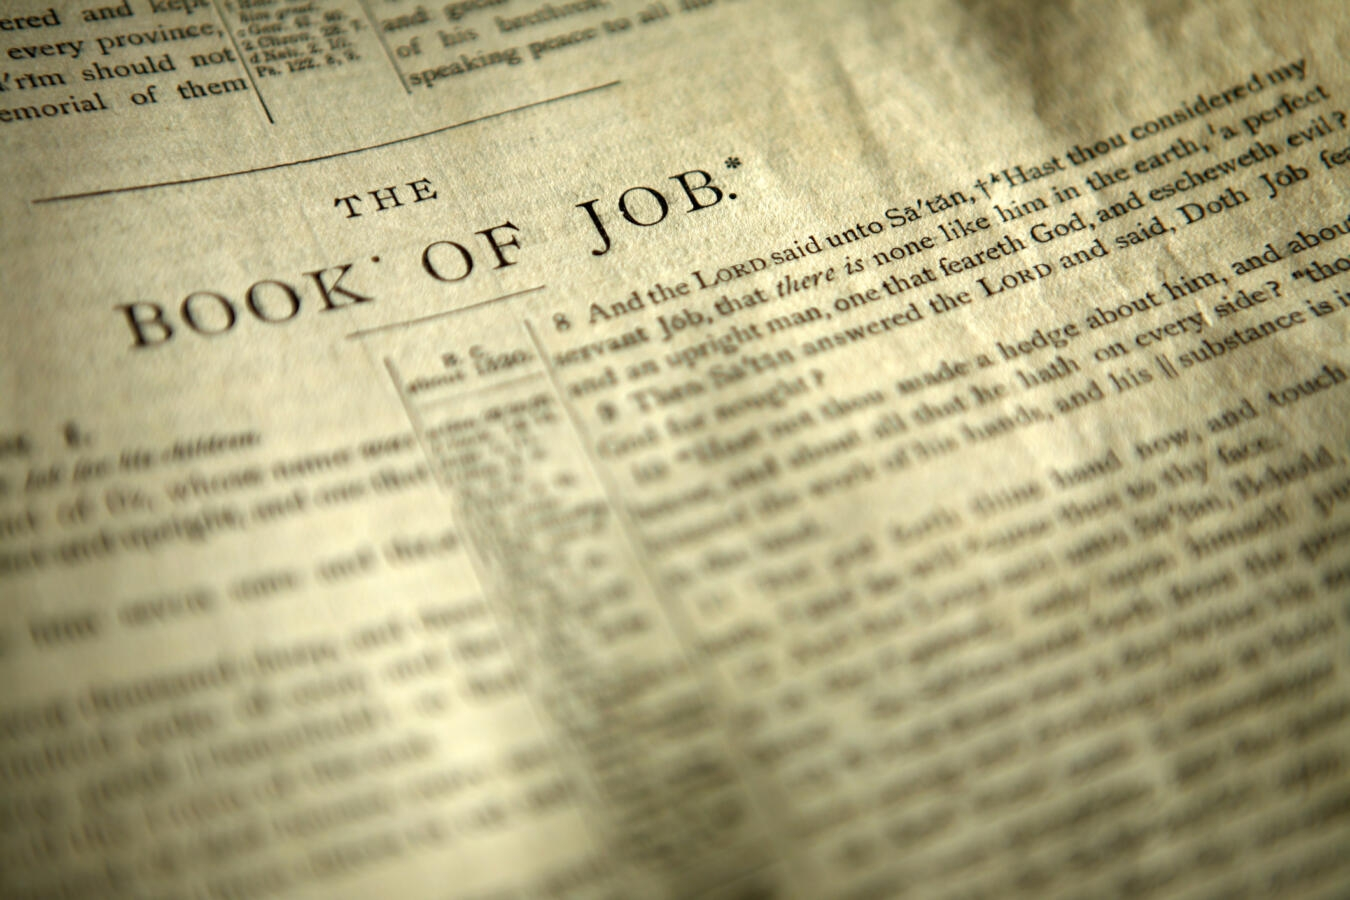 Bible open to the first page of the Book of Job.